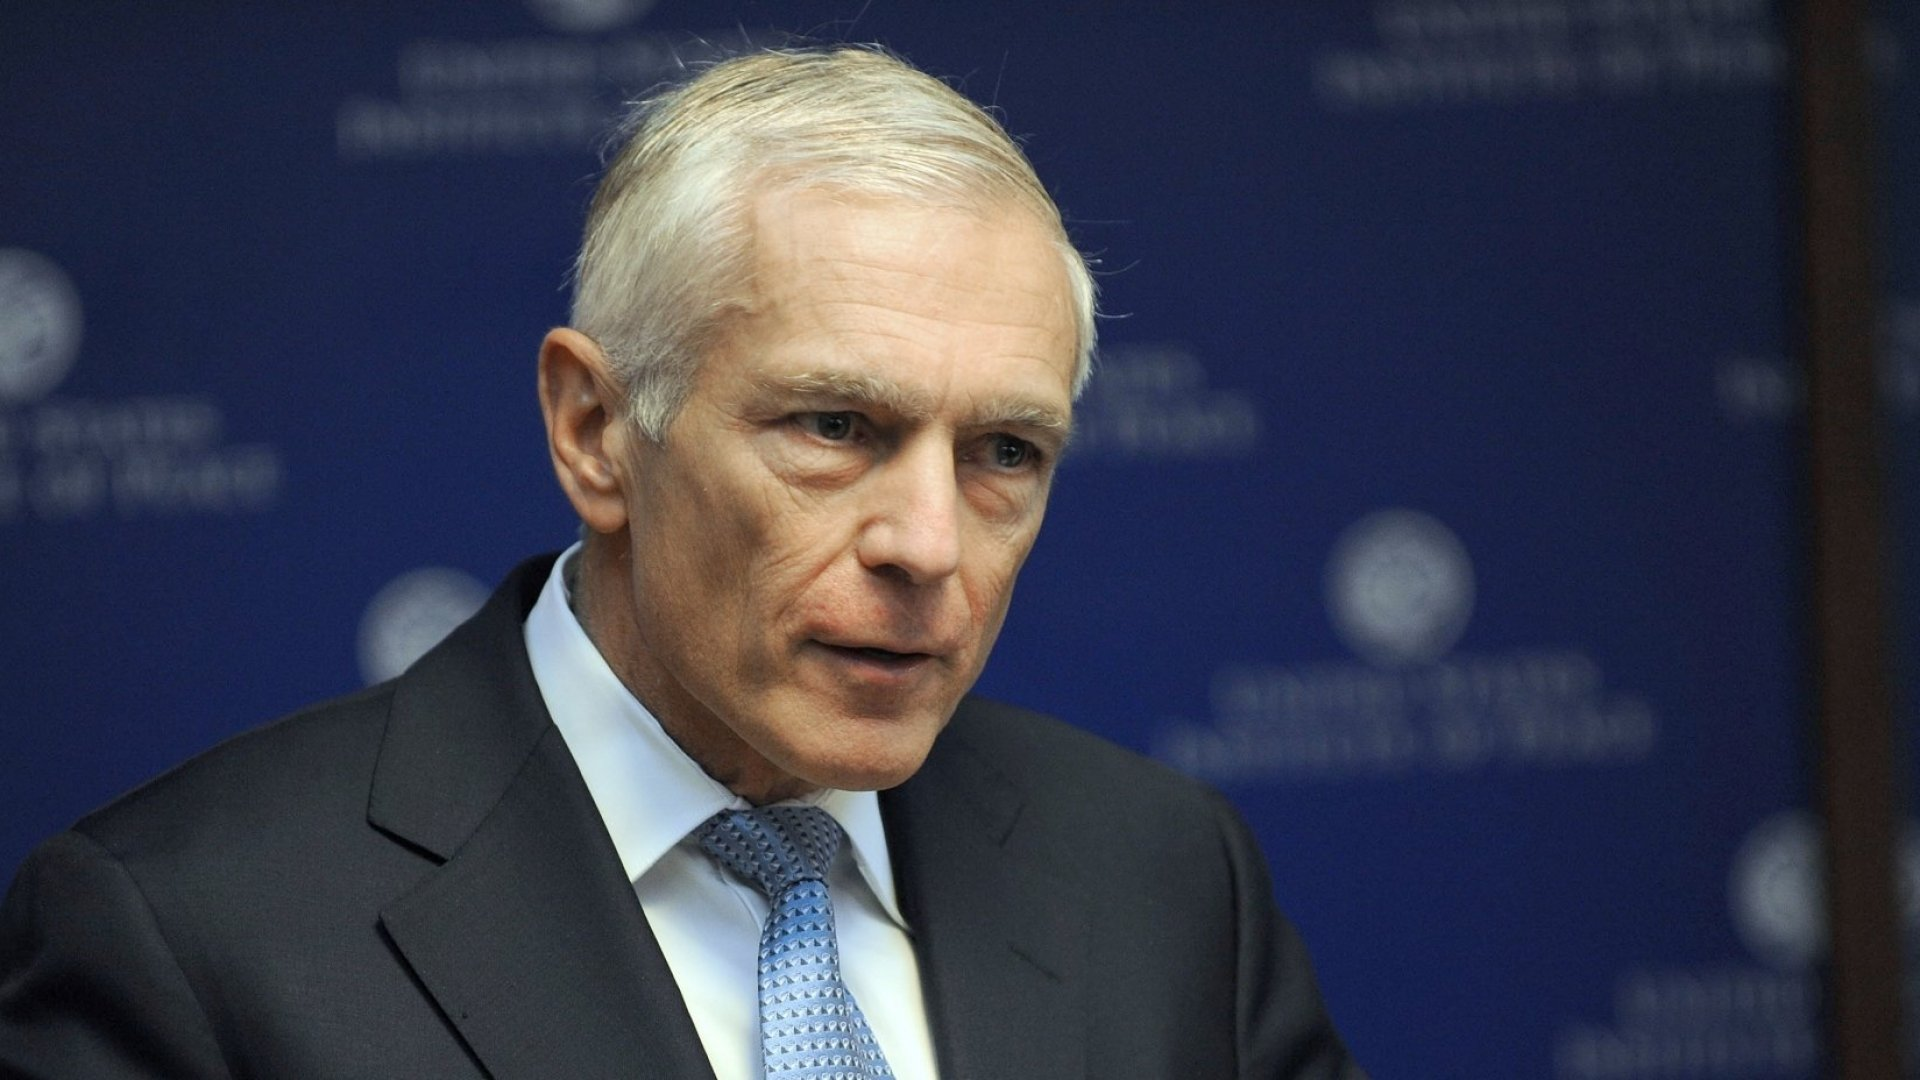 What to Say When General Wesley Clark Asks: Why Are You Here?